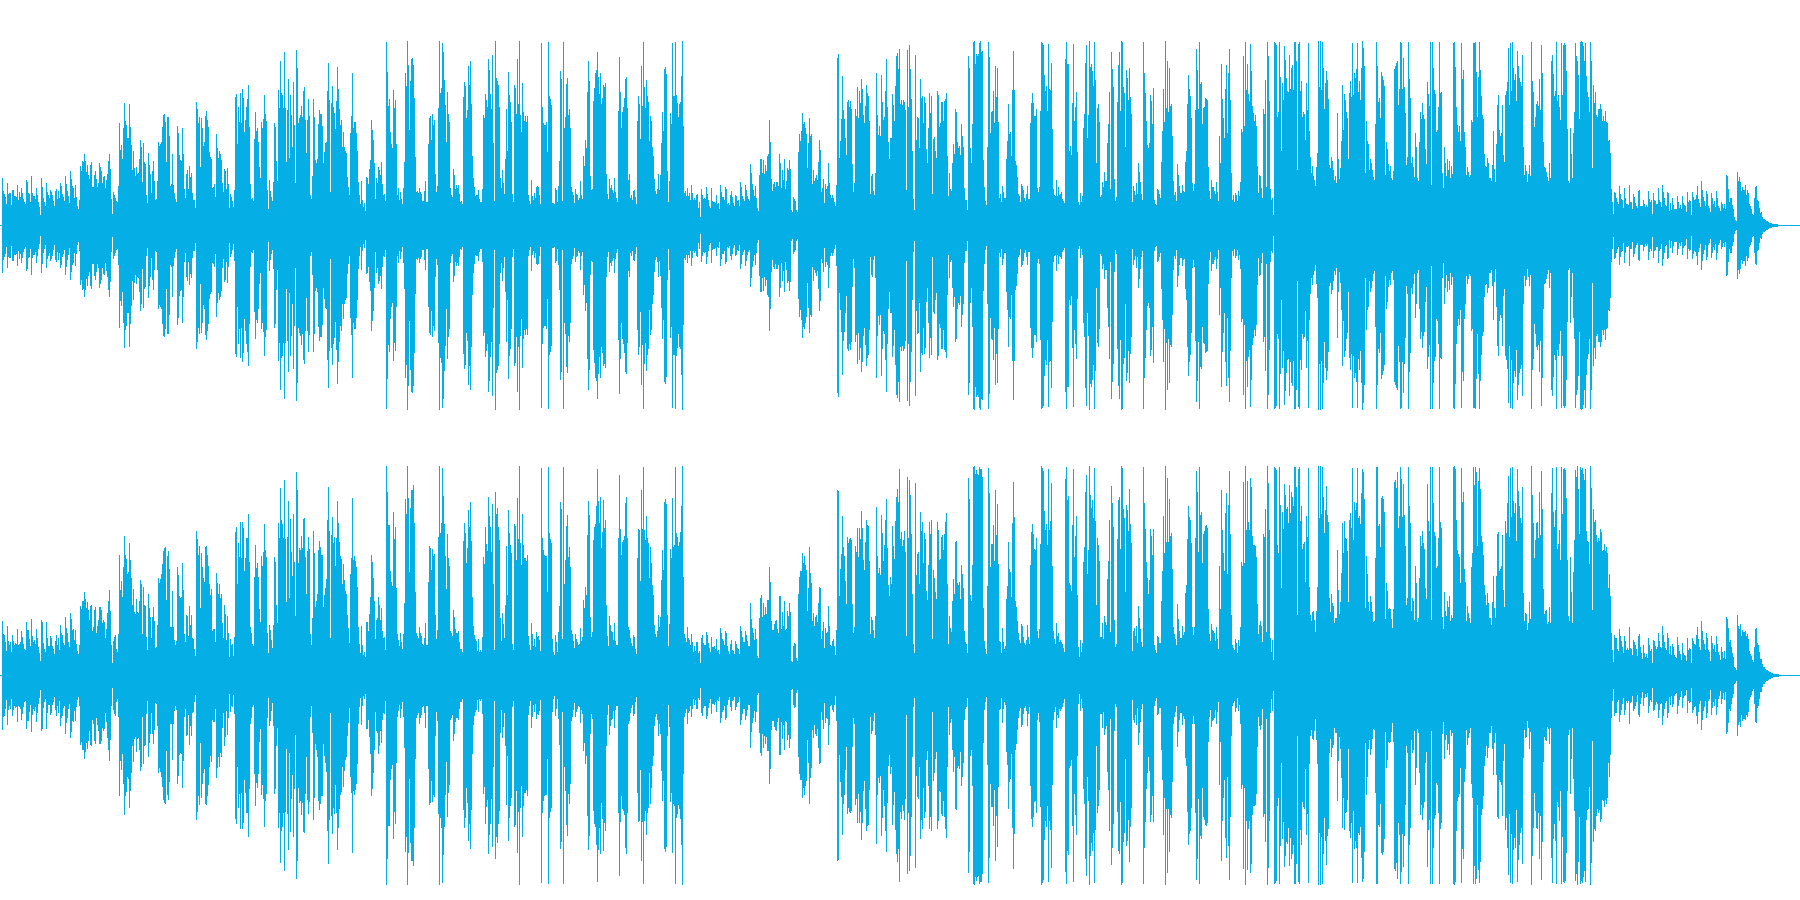 Female Vo. Playing the guitar facing life and death's reproduced waveform